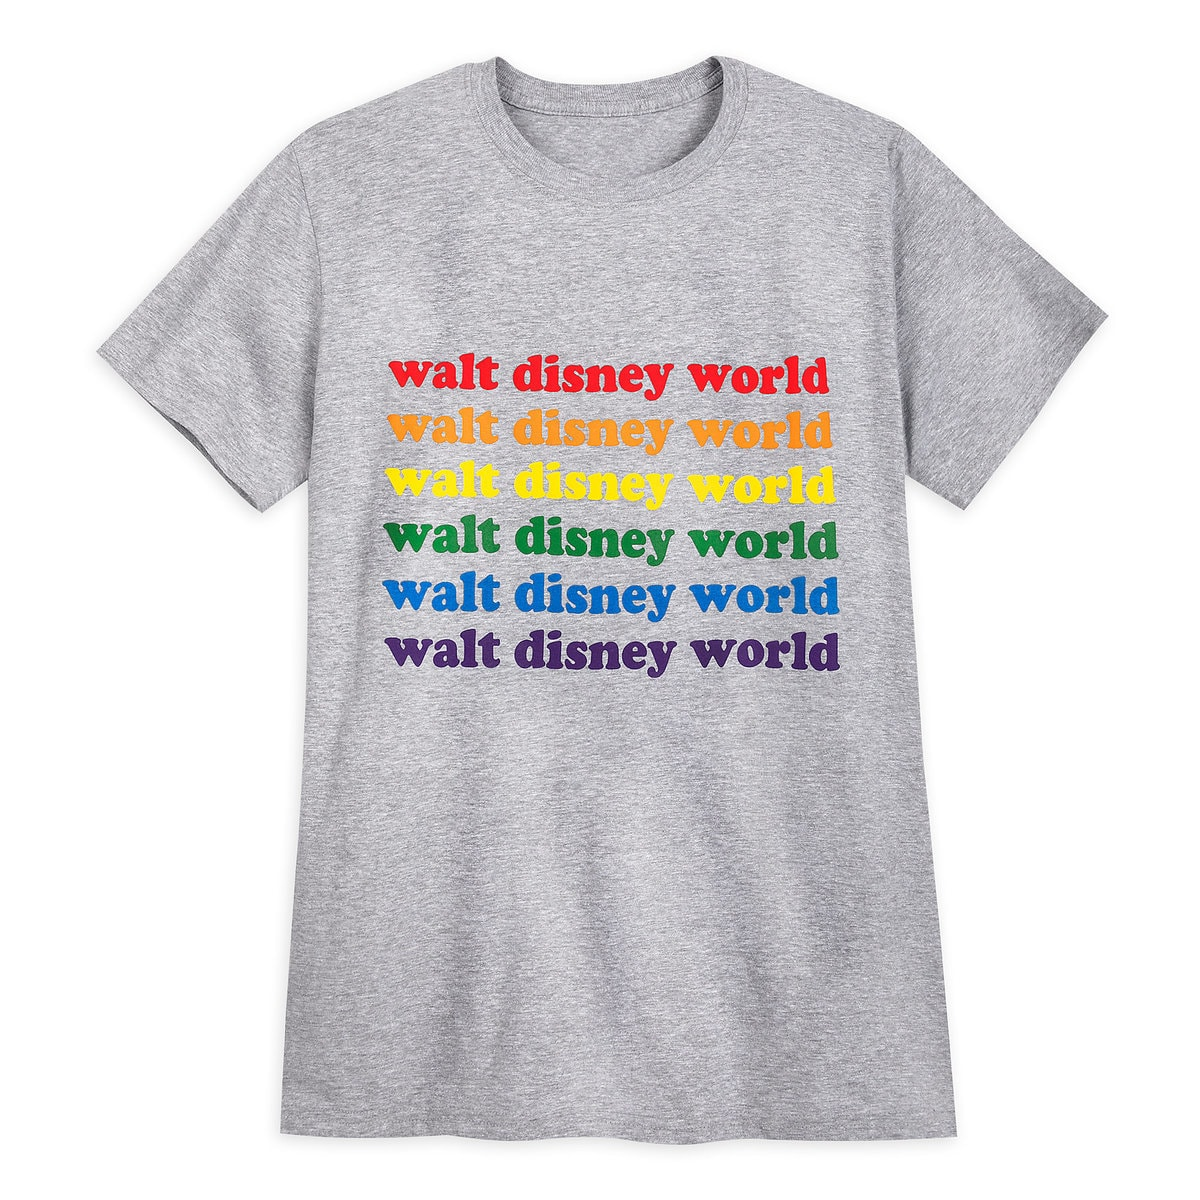 Rainbow Disney Collection Walt Disney World T Shirt For Adults